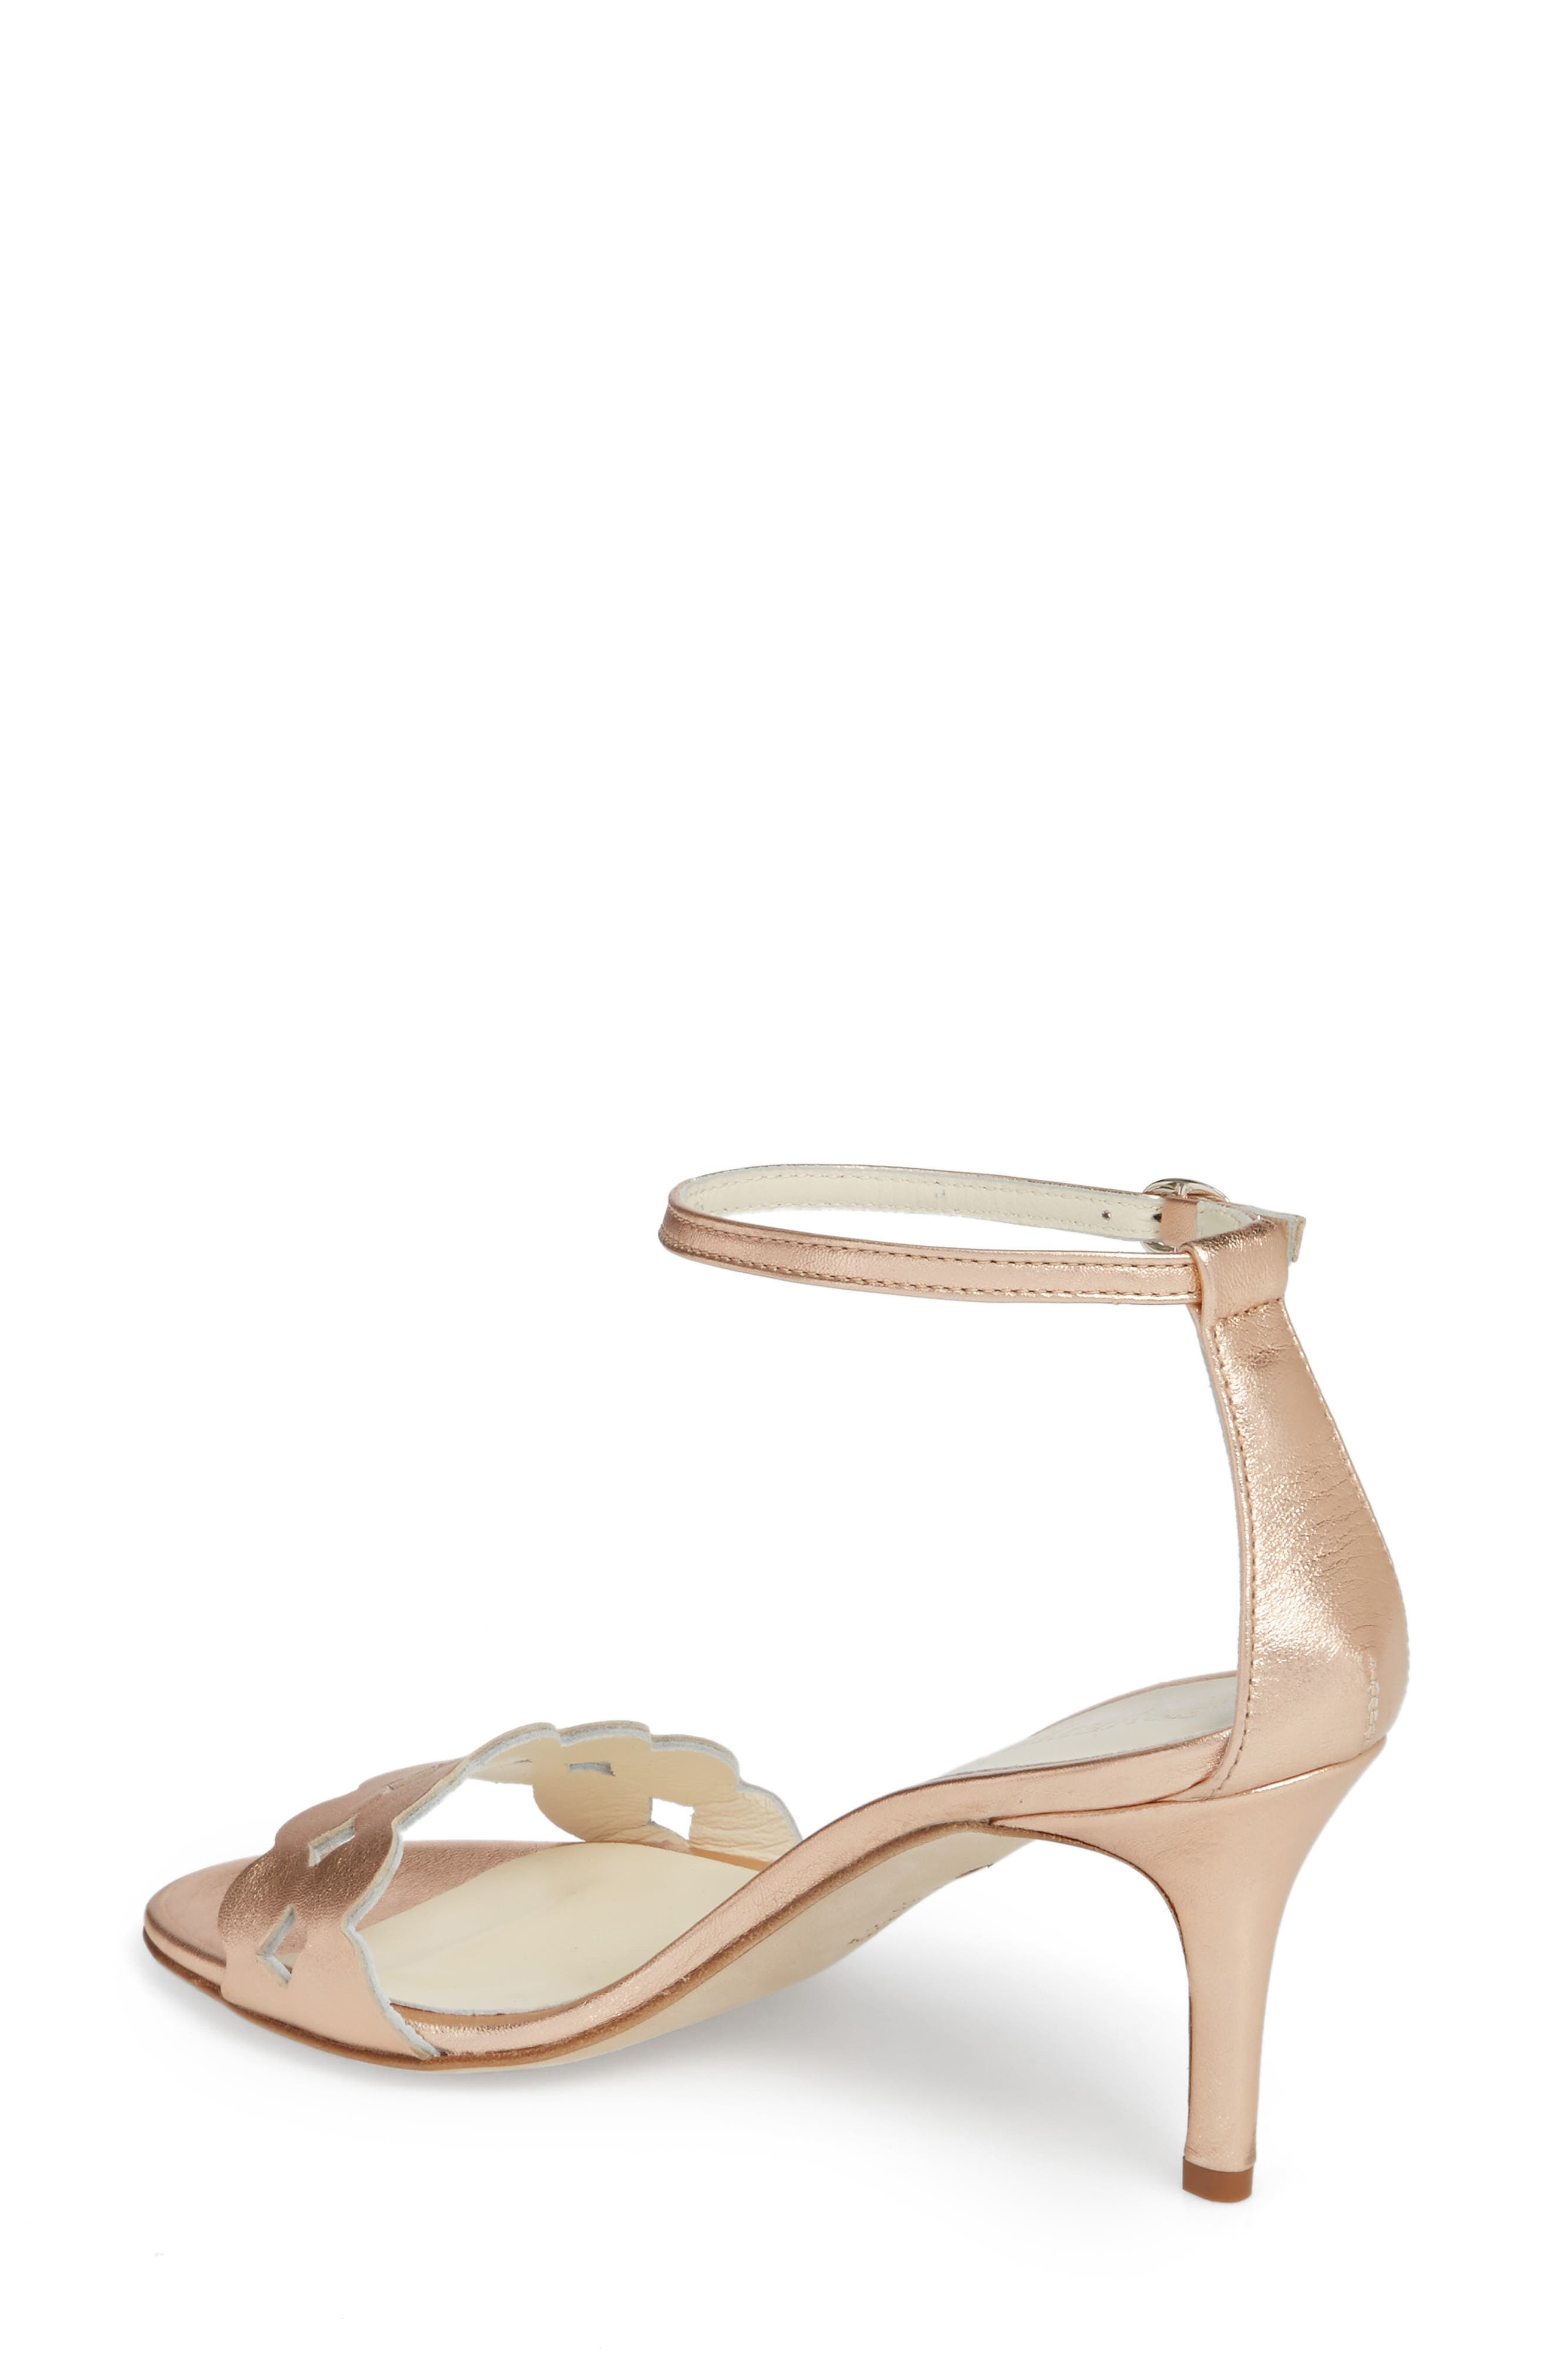 Gina Ankle Strap Sandal,                             Alternate thumbnail 2, color,                             Rose Gold Metallics